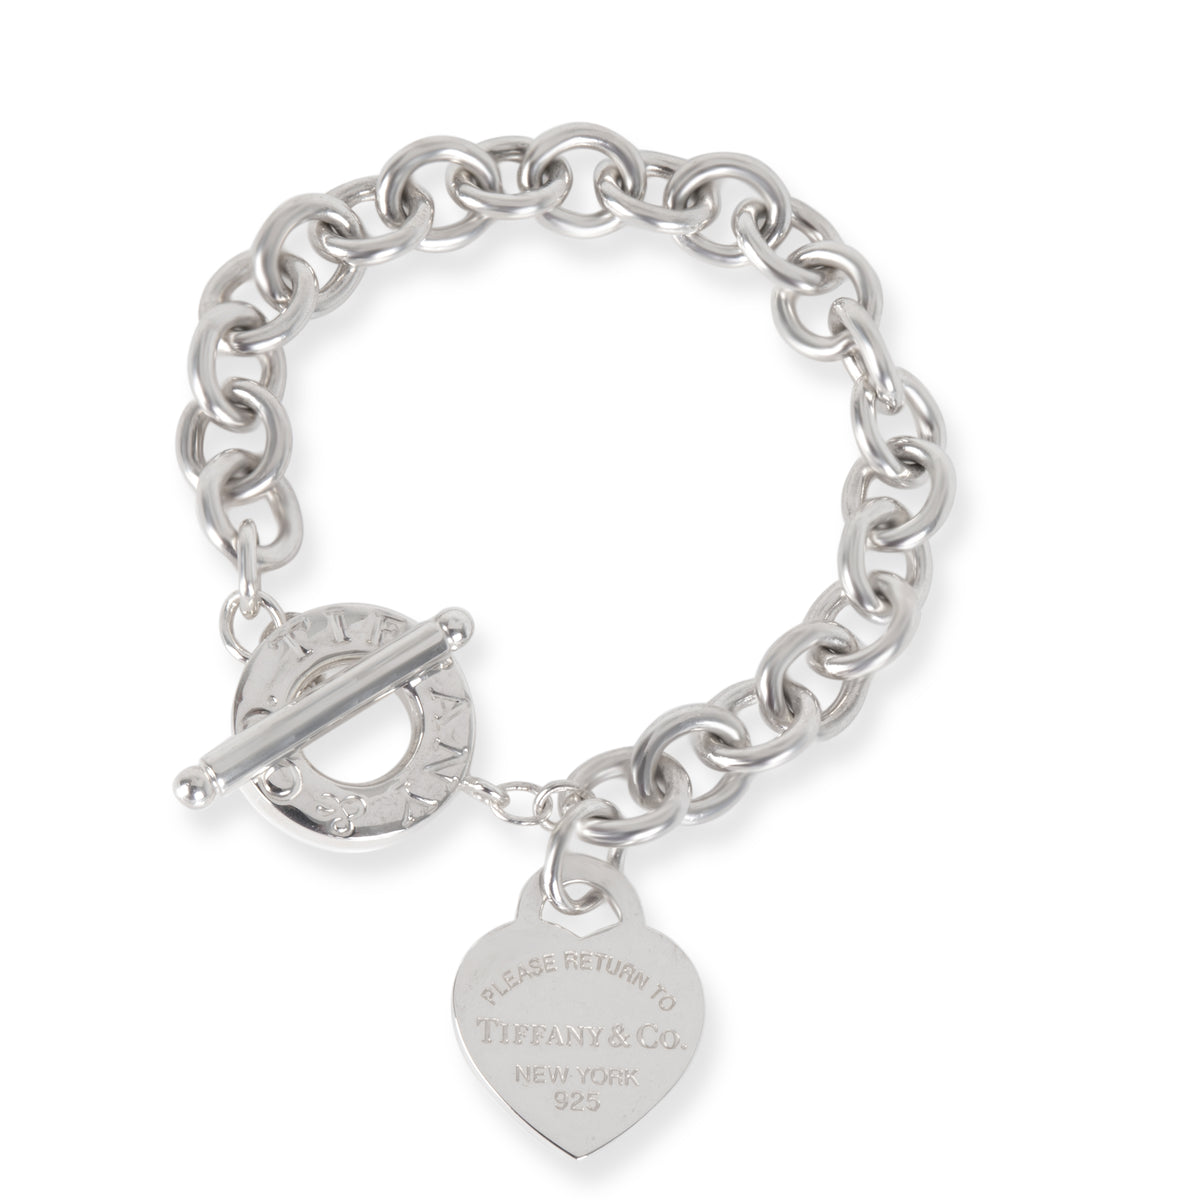 Tiffany & Co. Heart Tag Return to Tiffany Bracelet in  Sterling Silver